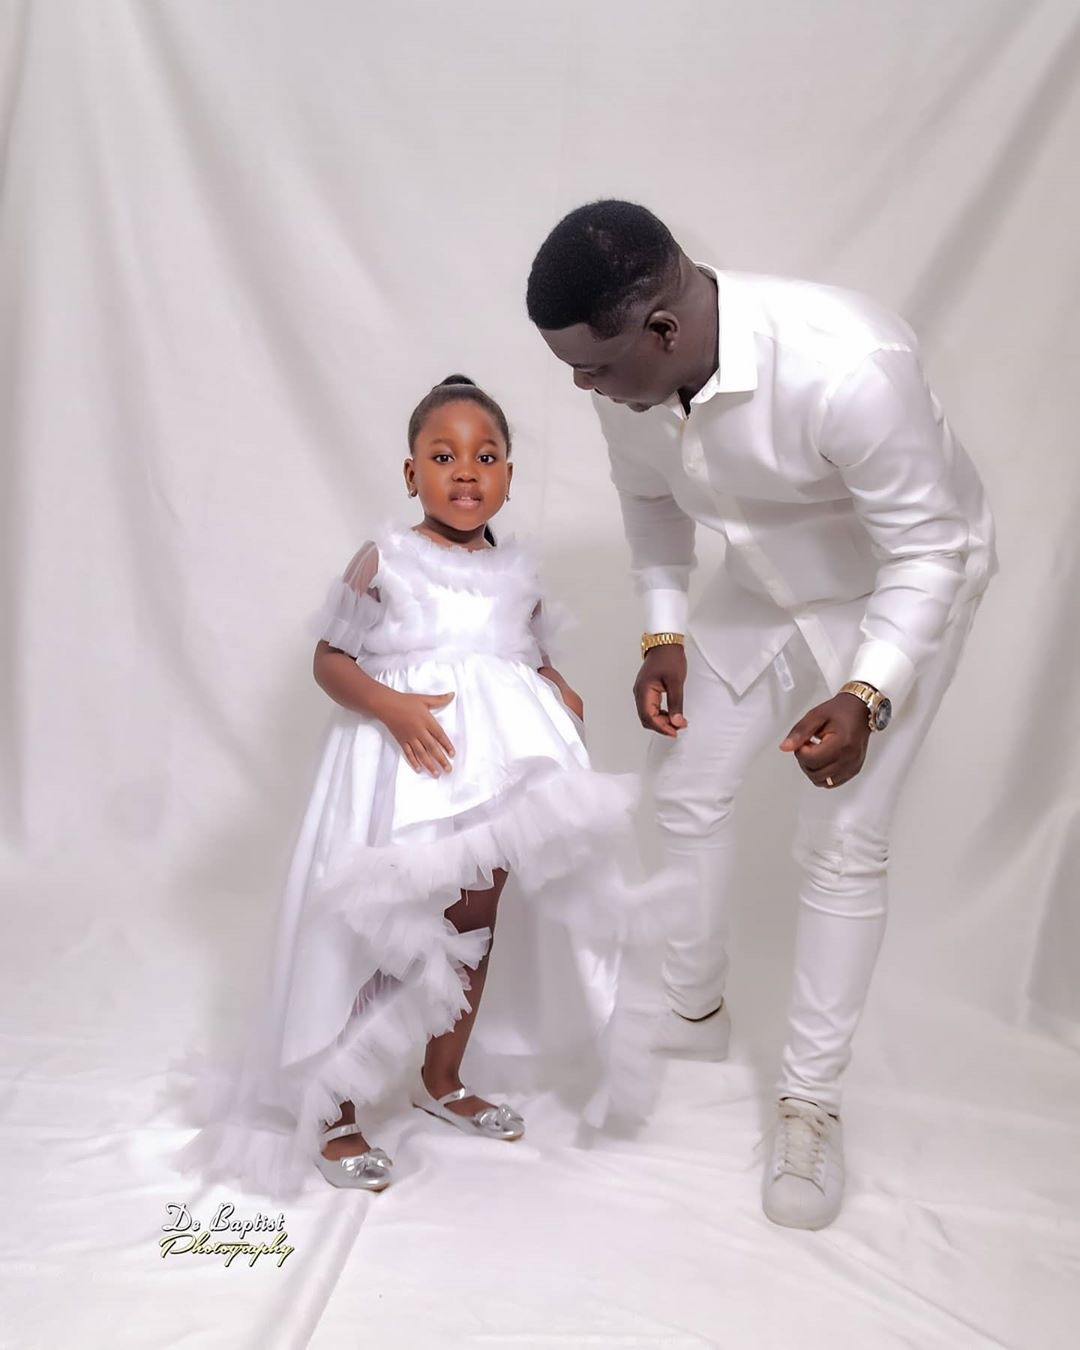 Comedian Seyi Law shares lovely photo of himself and his daughter, Tiwa, who turns 4 today